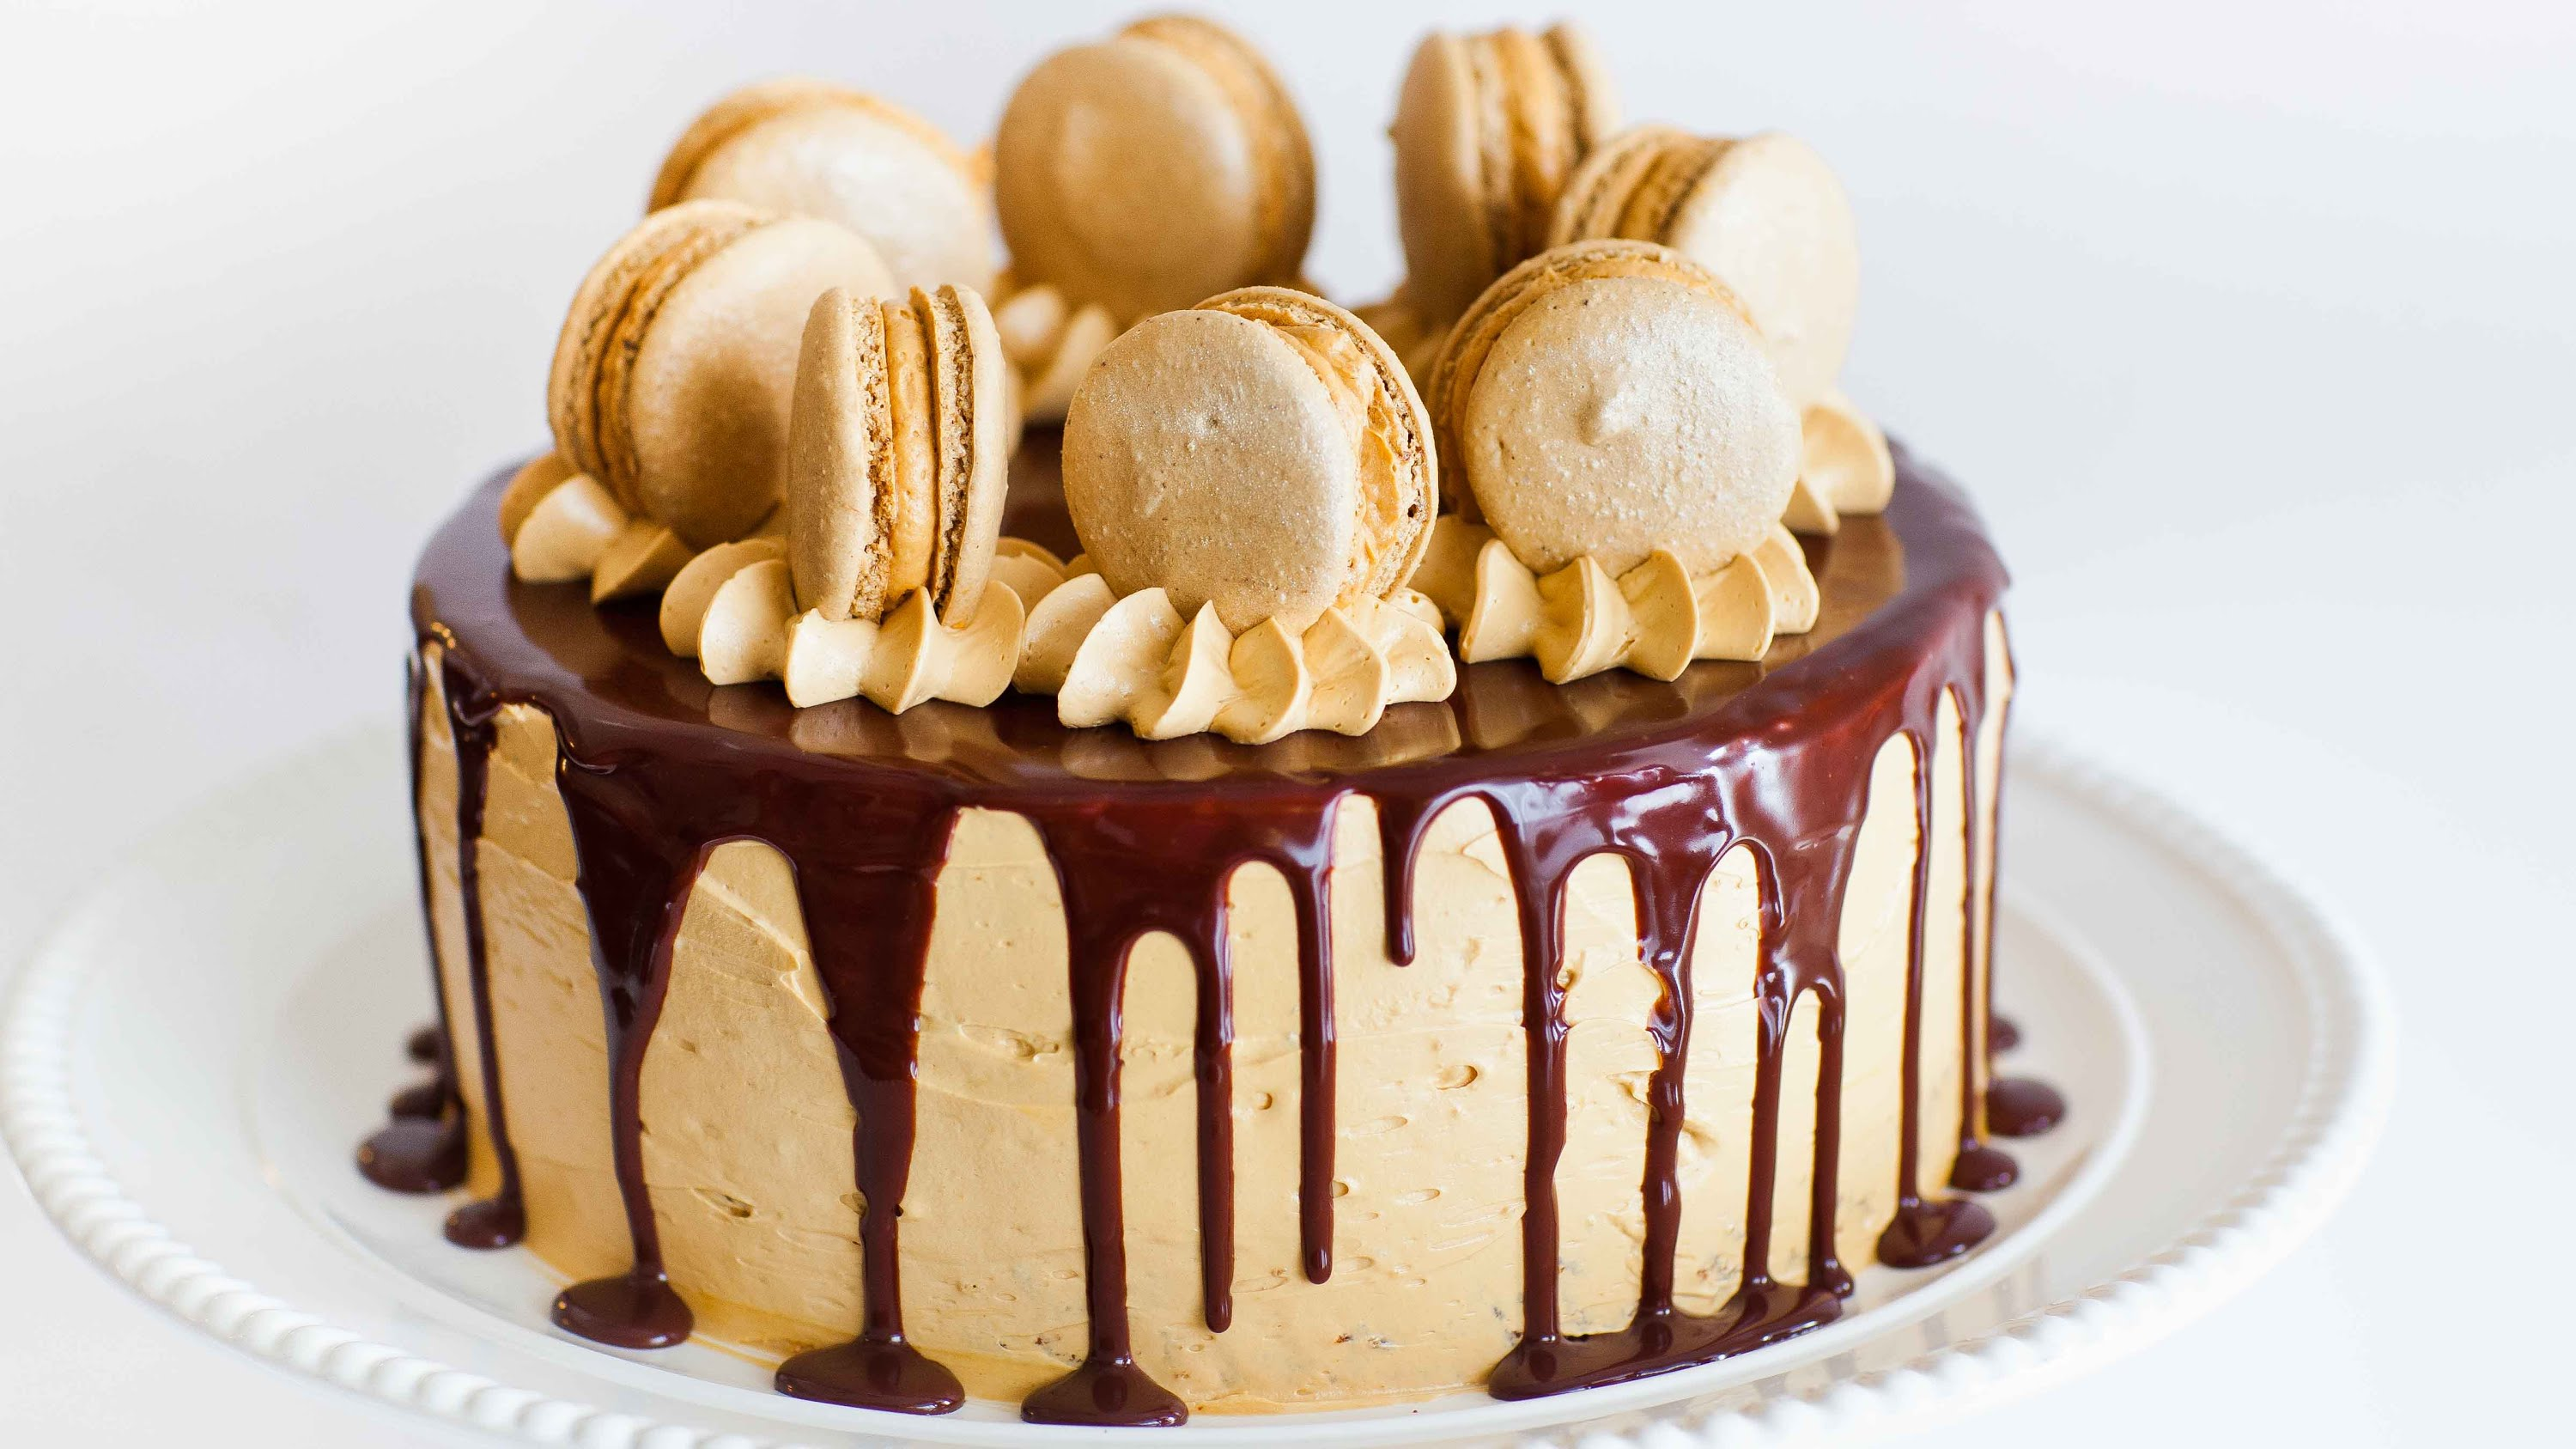 Just The Name Of This Cake Is Enough To Get You Hooked – Coffee Caramel Cake With Chocolate Ganache